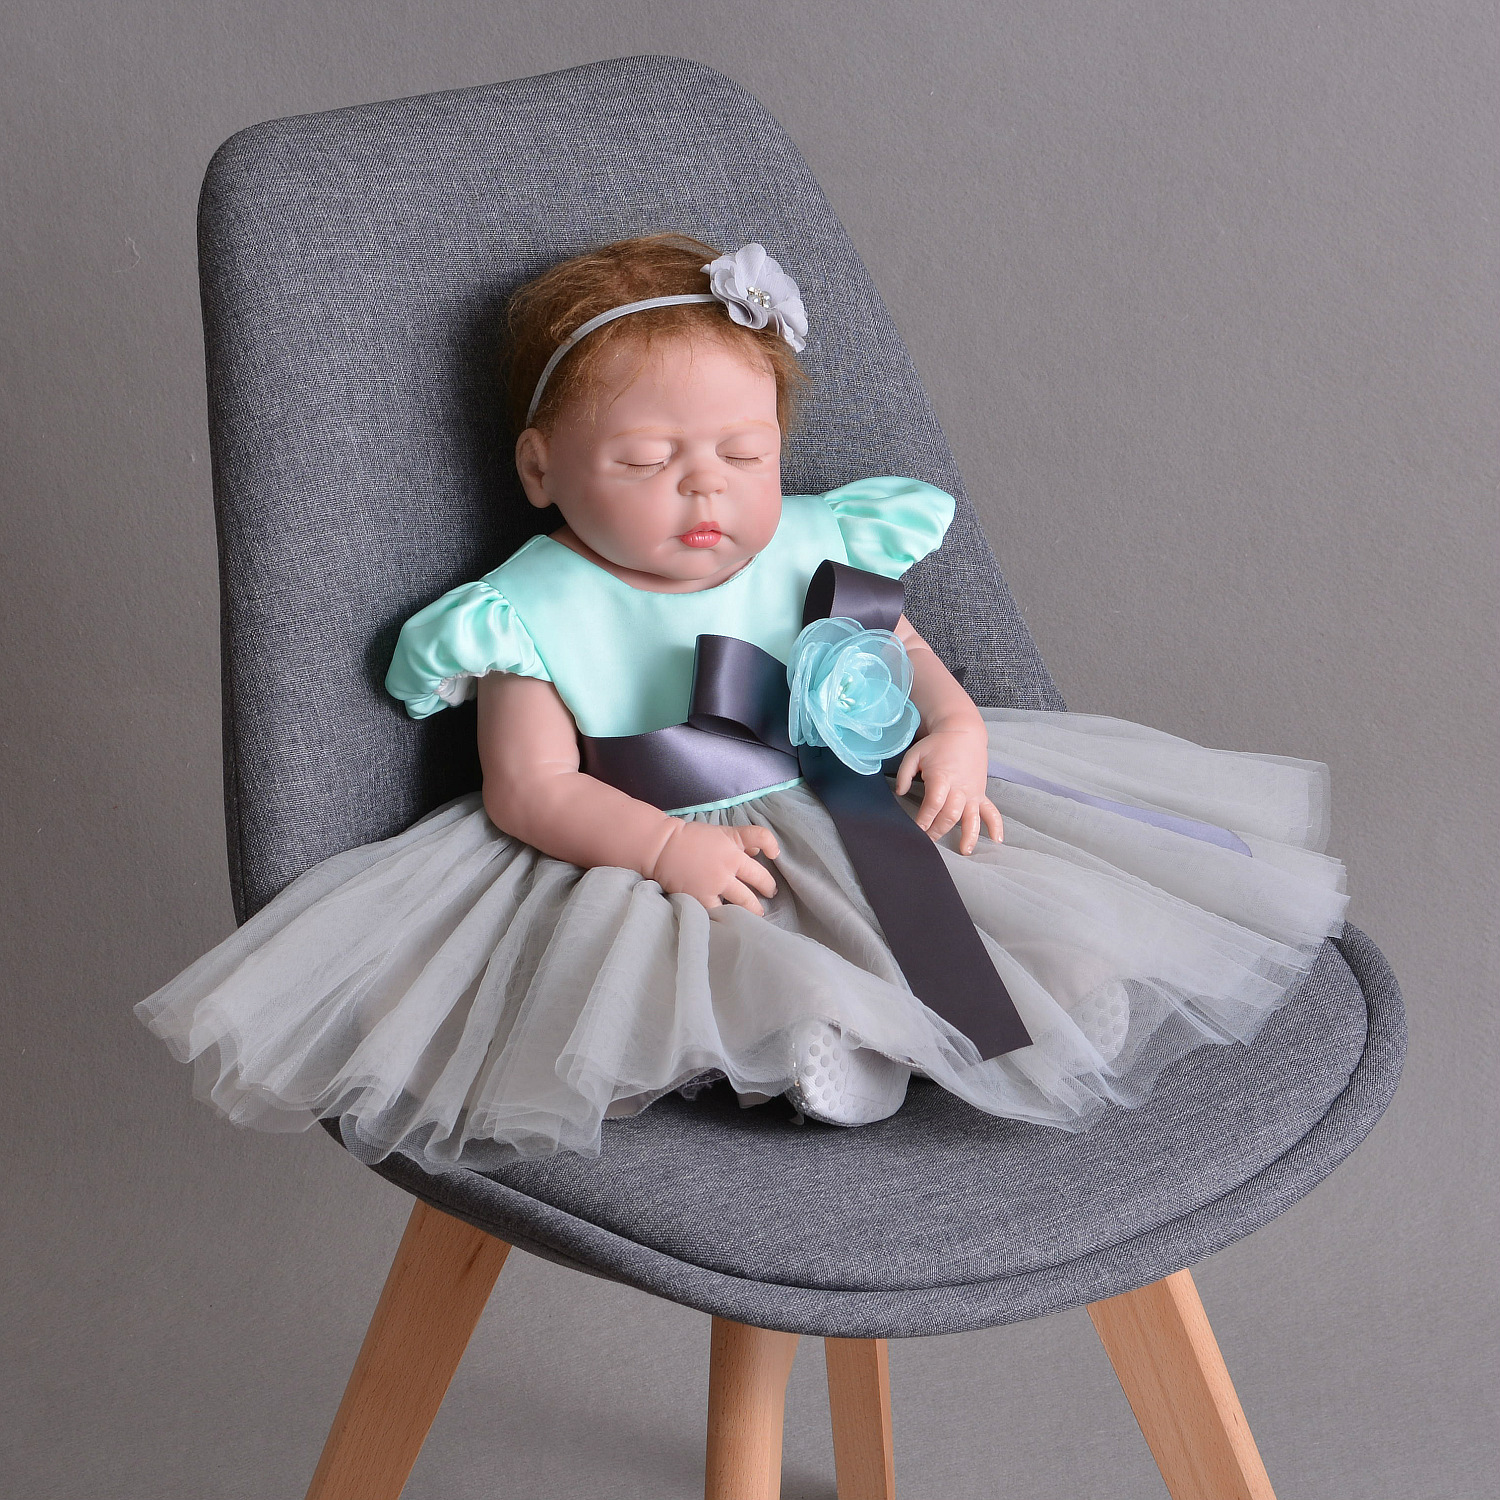 Blue Gray Baby Dress 1 2 Year Old Birthday Formal Weddings Flower Baby Girl Clothes 0-24 Month Baby Toddler Vestido RBF184014